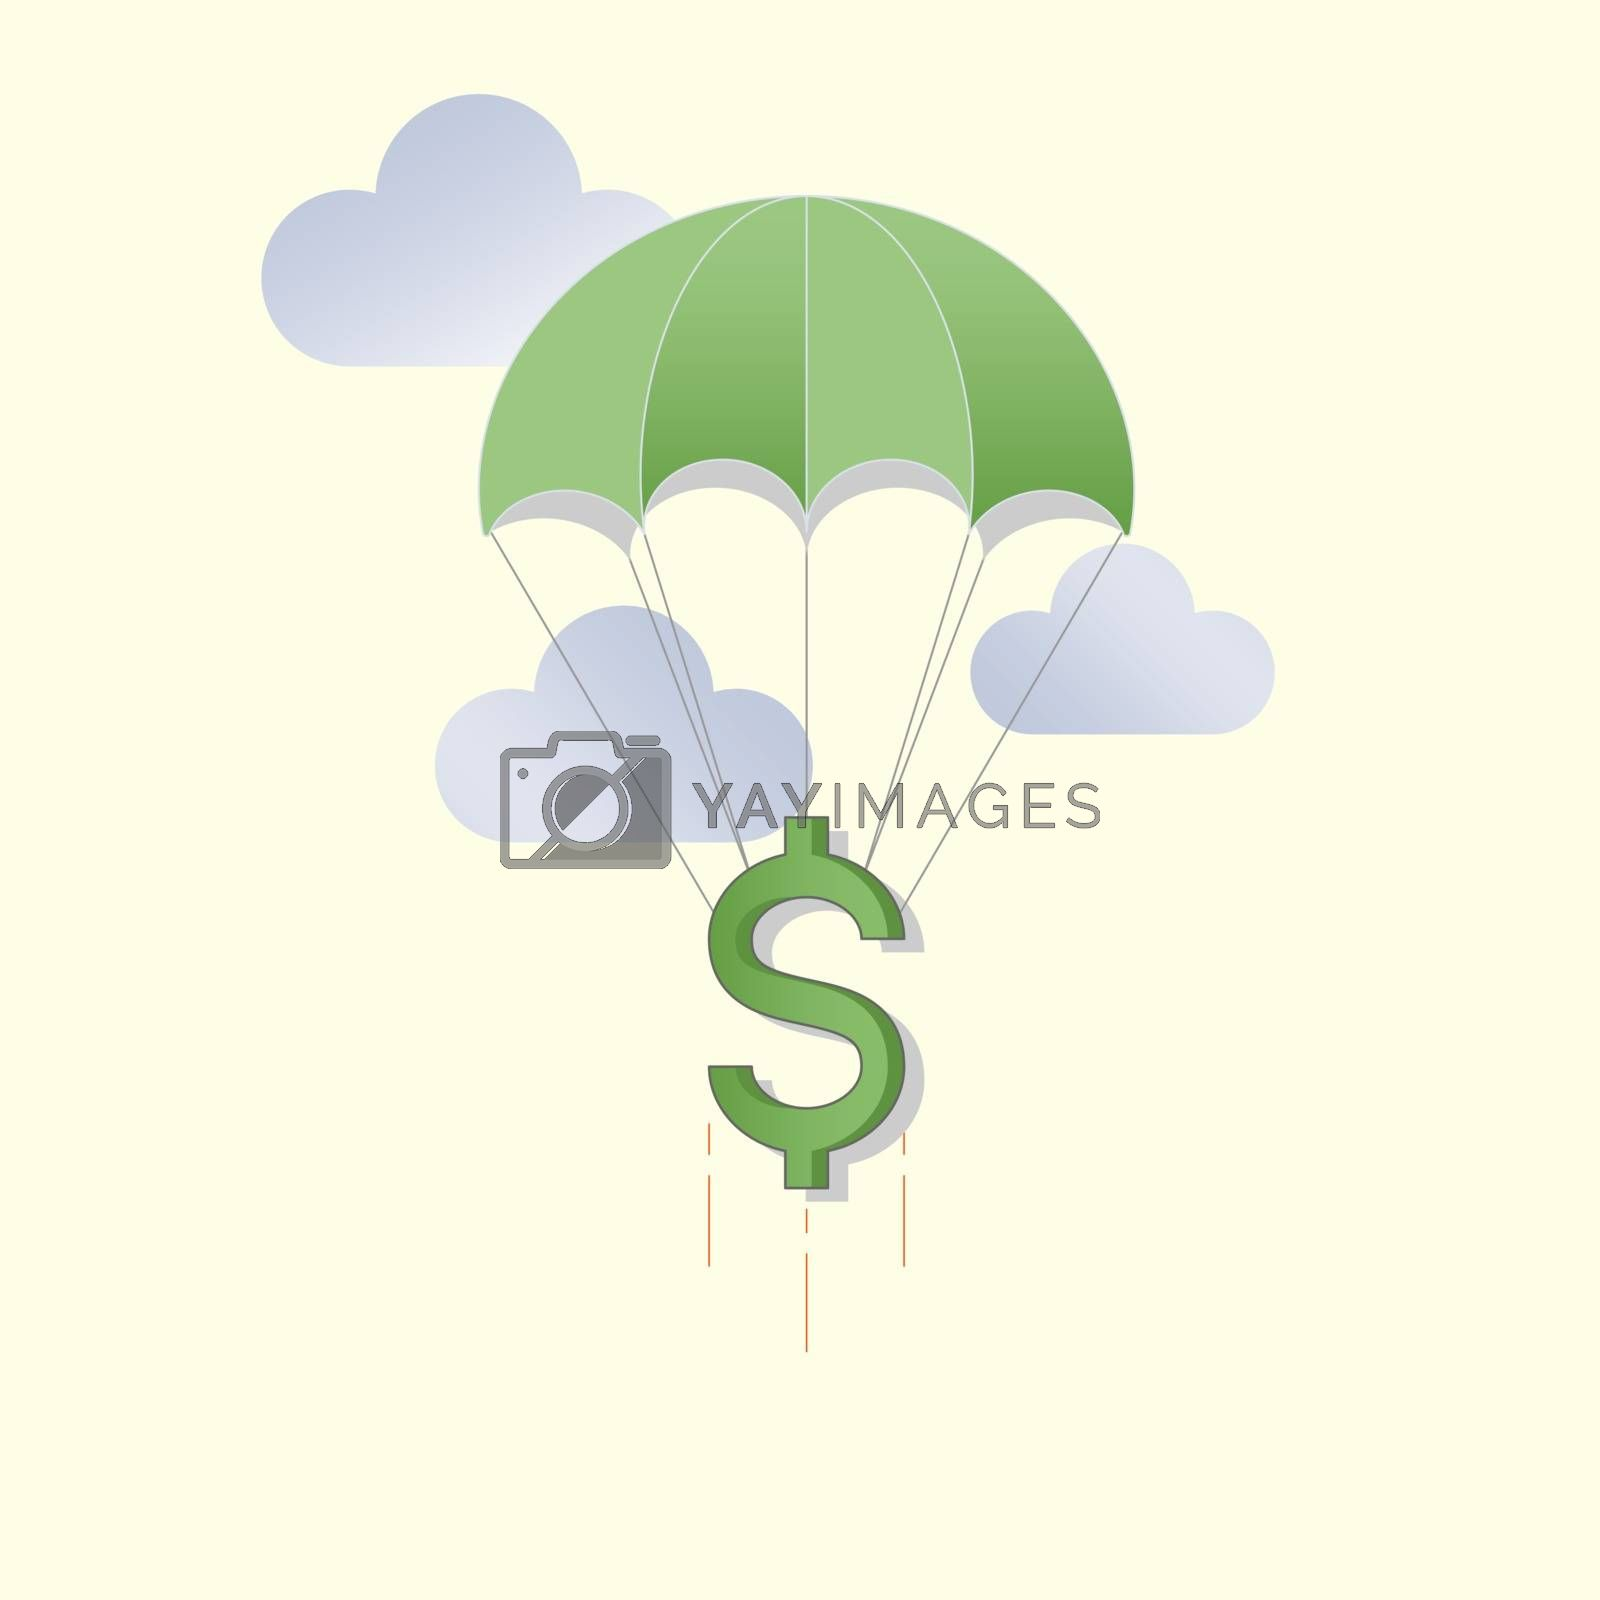 Dollar sign flying on a parachute. Economic support. Financial aid. Vector illustration outline flat design style.